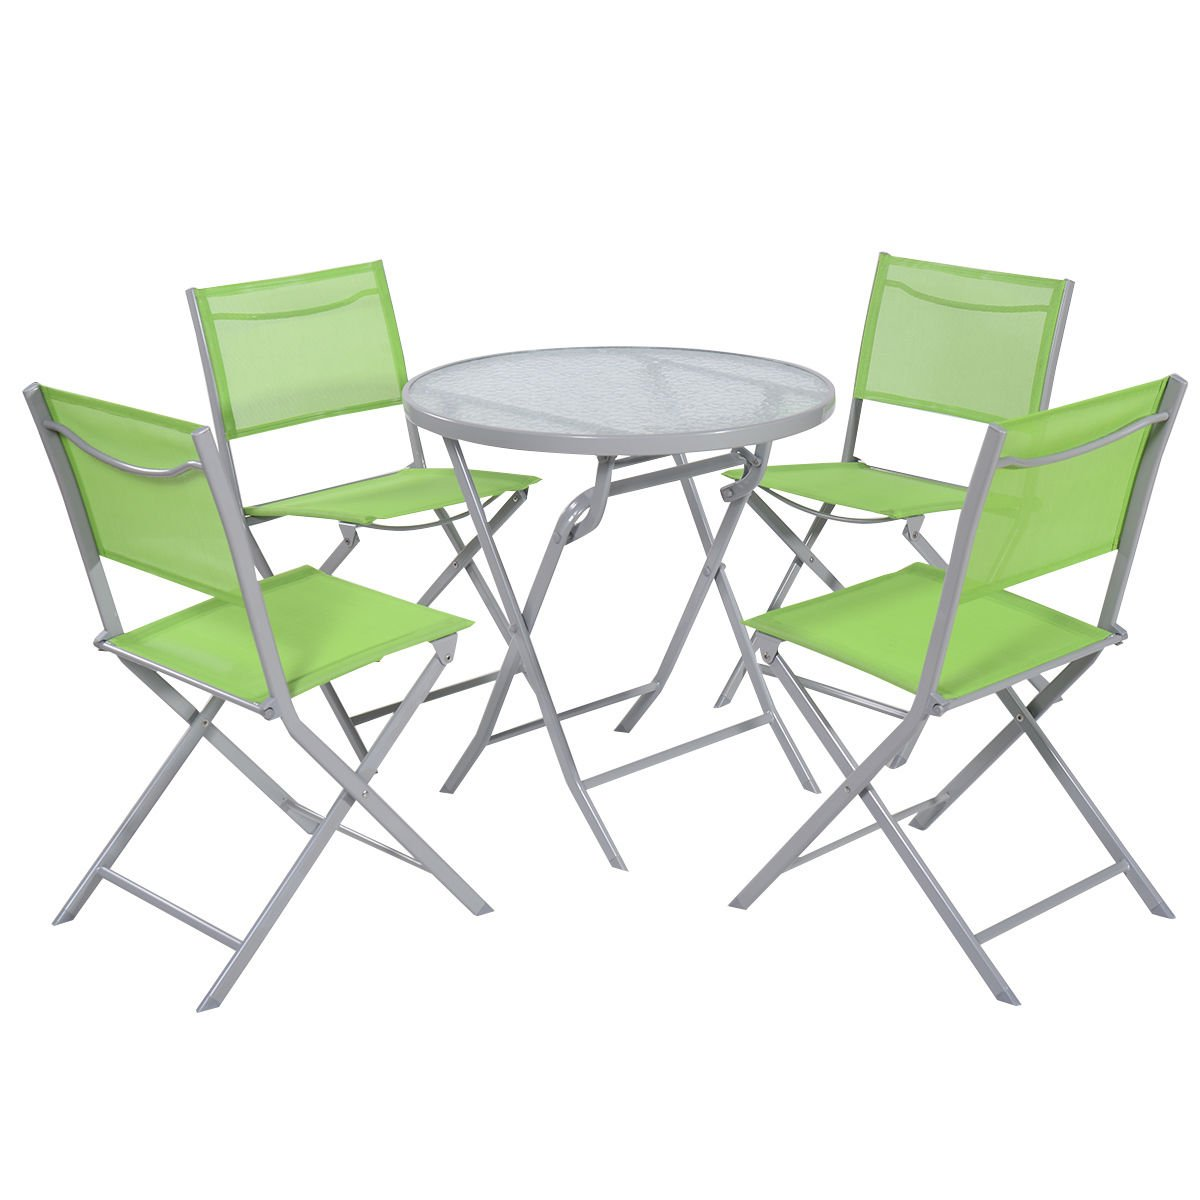 Giantex 5 PCS Bistro Set Garden 4 Folding Chairs Table Outdoor Patio Furniture (Light Green)